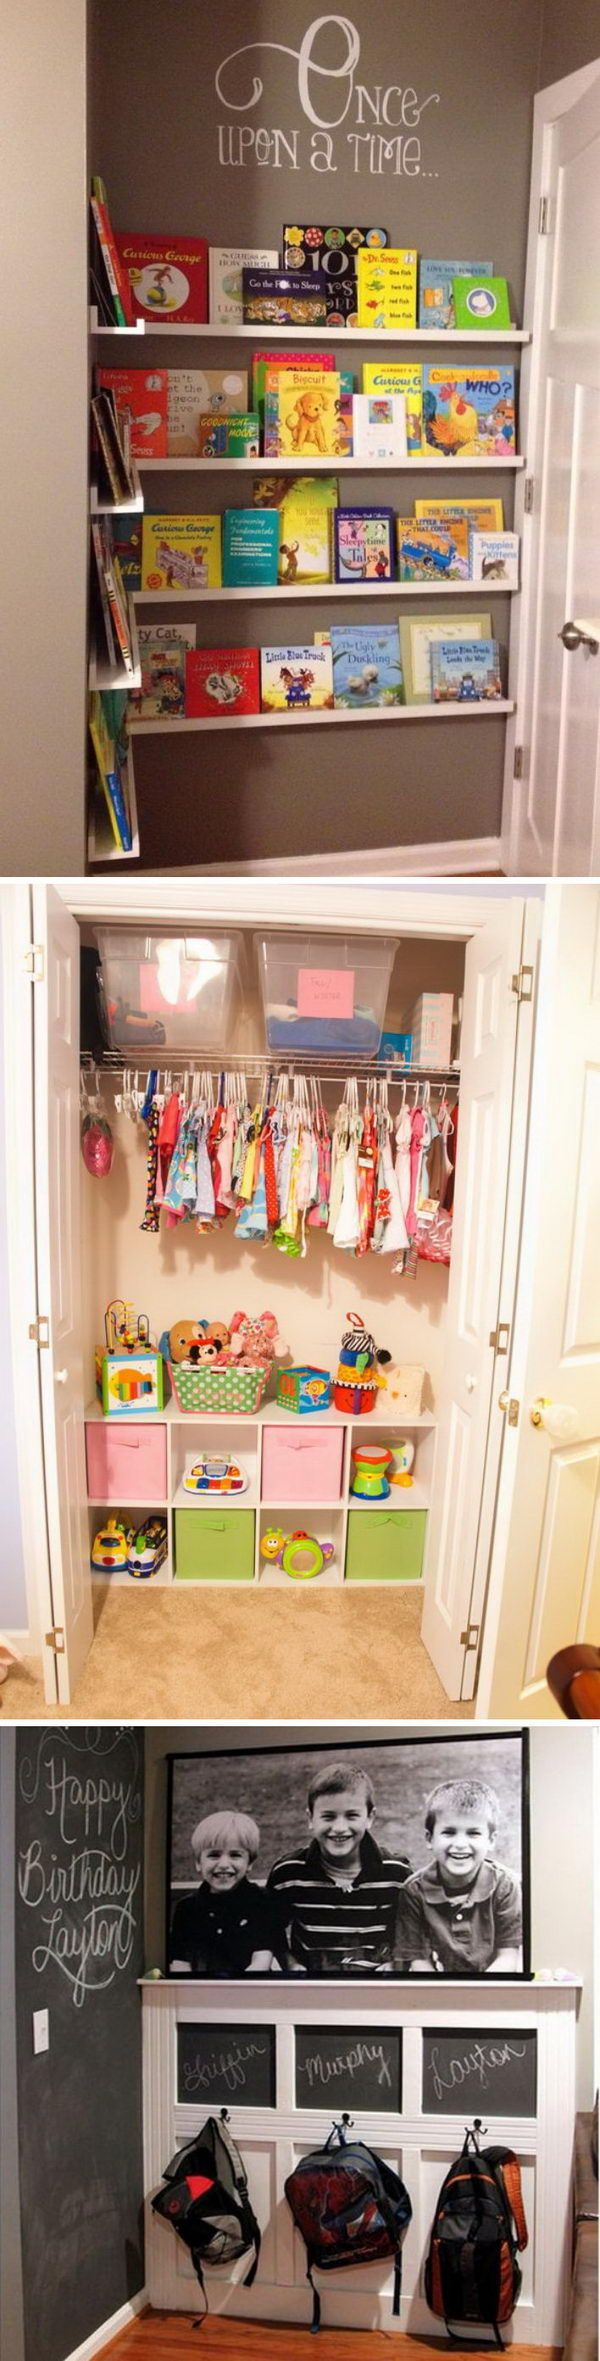 Creative Storage Ideas To Organize Kids Room Kids Rooms Diy Kids Room Organization Bookshelves Kids